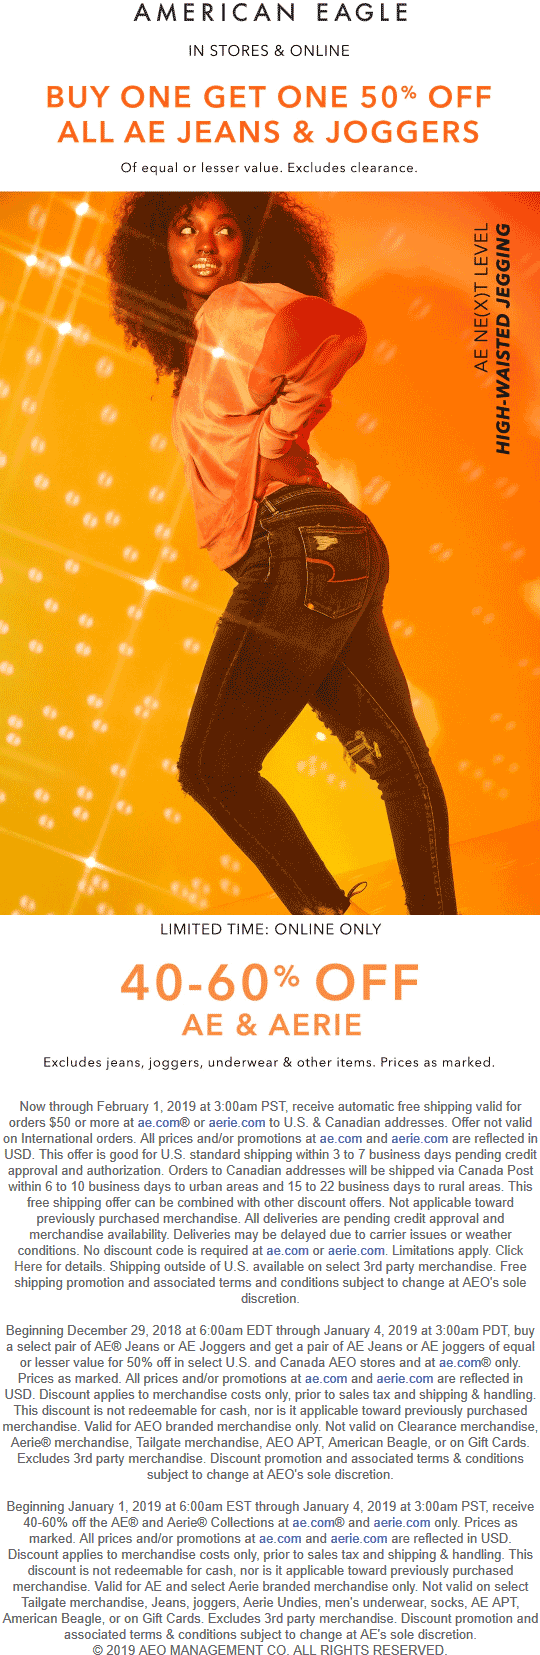 American Eagle Coupon January 2020 Second jeans 50% off at American Eagle, ditto online